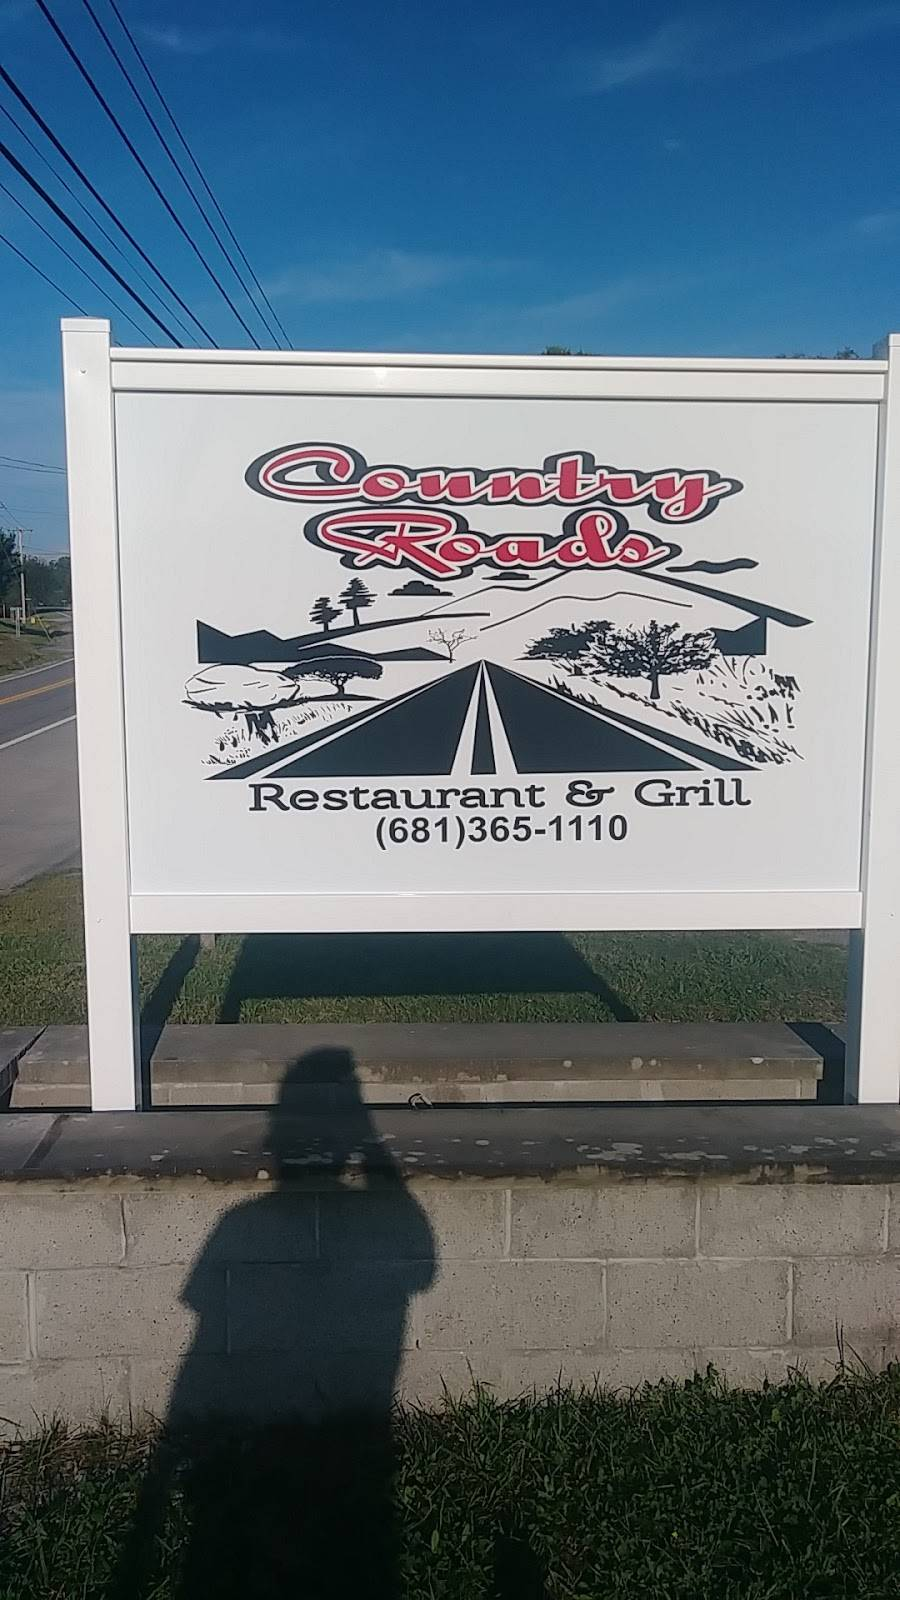 COUNTRY ROADS RESTAURANT & GRILL | restaurant | 6025 Webster Rd, Cowen, WV 26206, USA | 6813651110 OR +1 681-365-1110